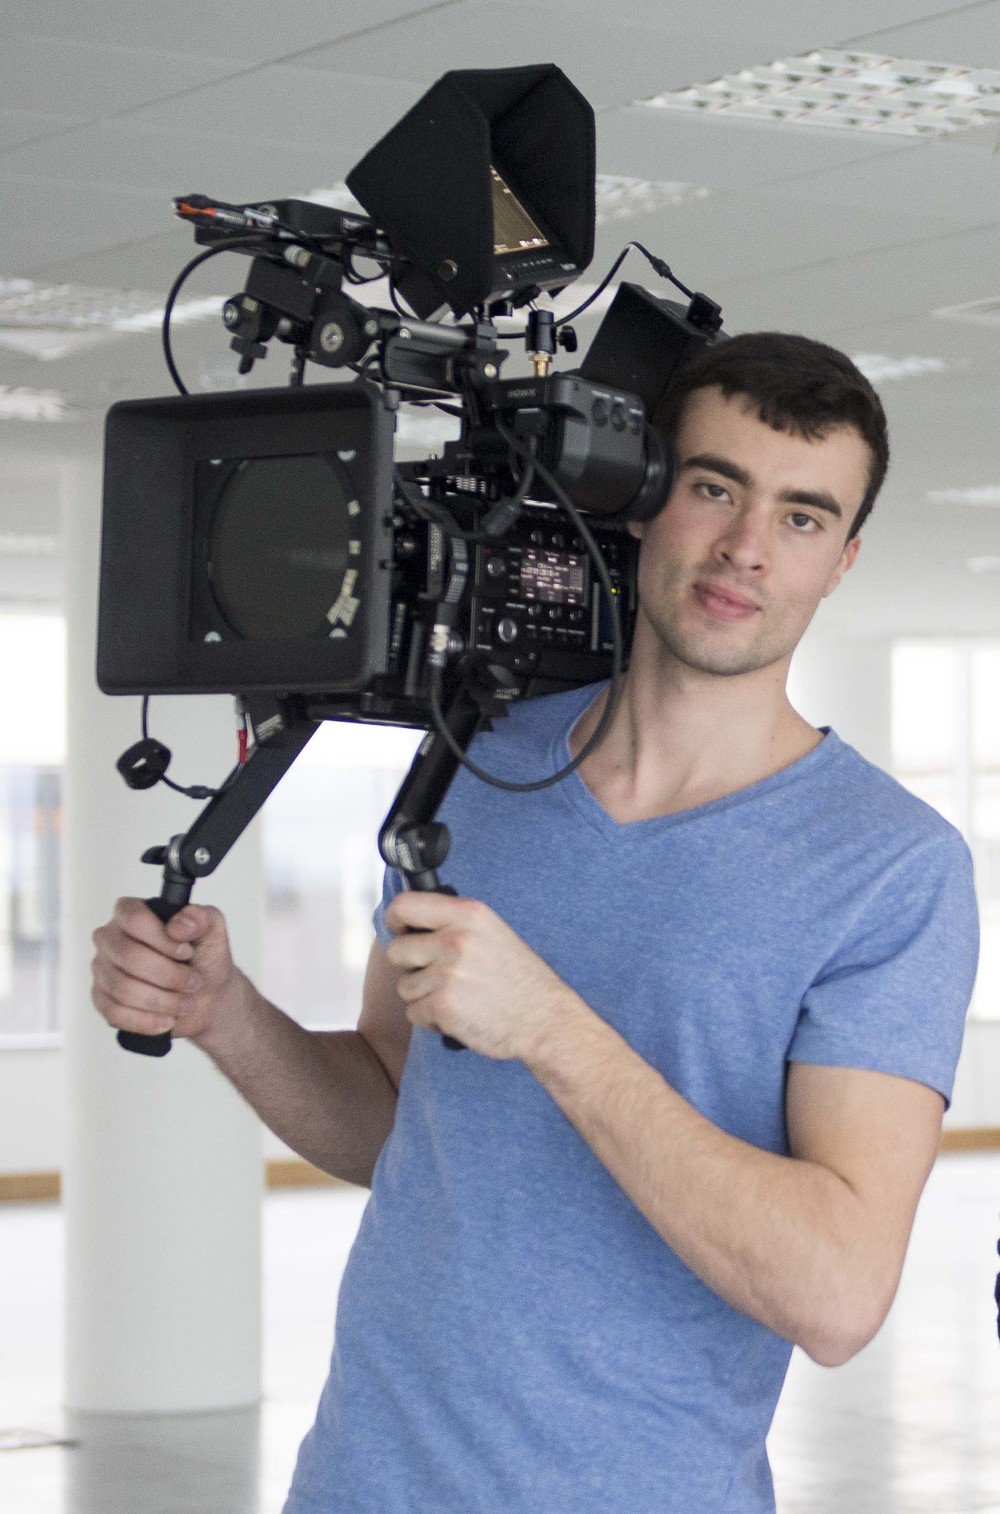 Image of Oliver Janesh Christiansen, the Founder of Cinefade and an incredibly handsome young man holding a camera on his shoulders.